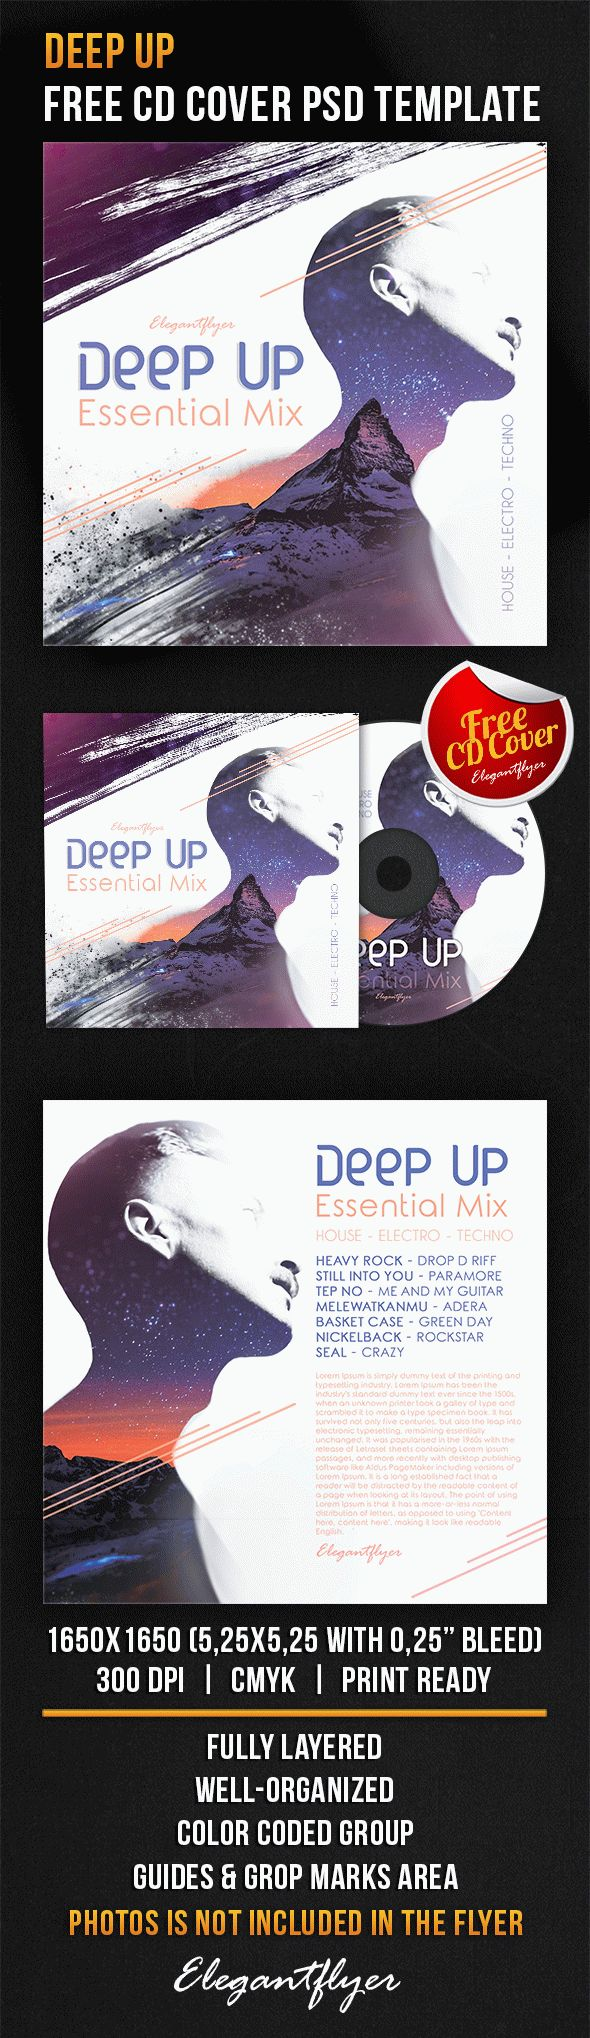 Deep Up – Free CD Cover PSD Template